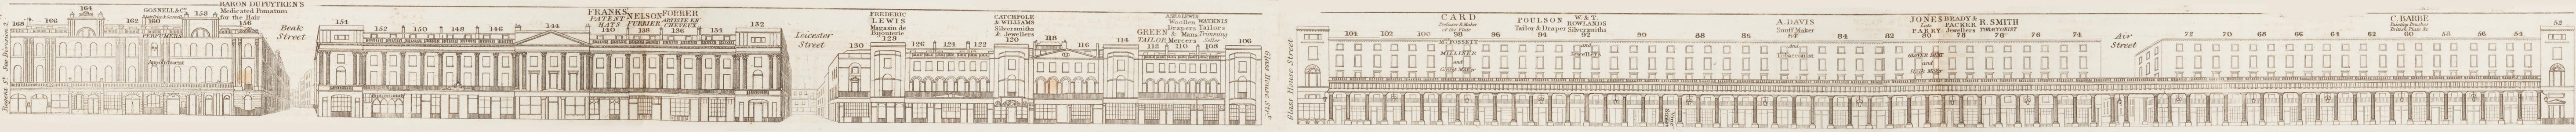 map - Tallis's London street views : No. 12. Regent Street, division 3 (east)